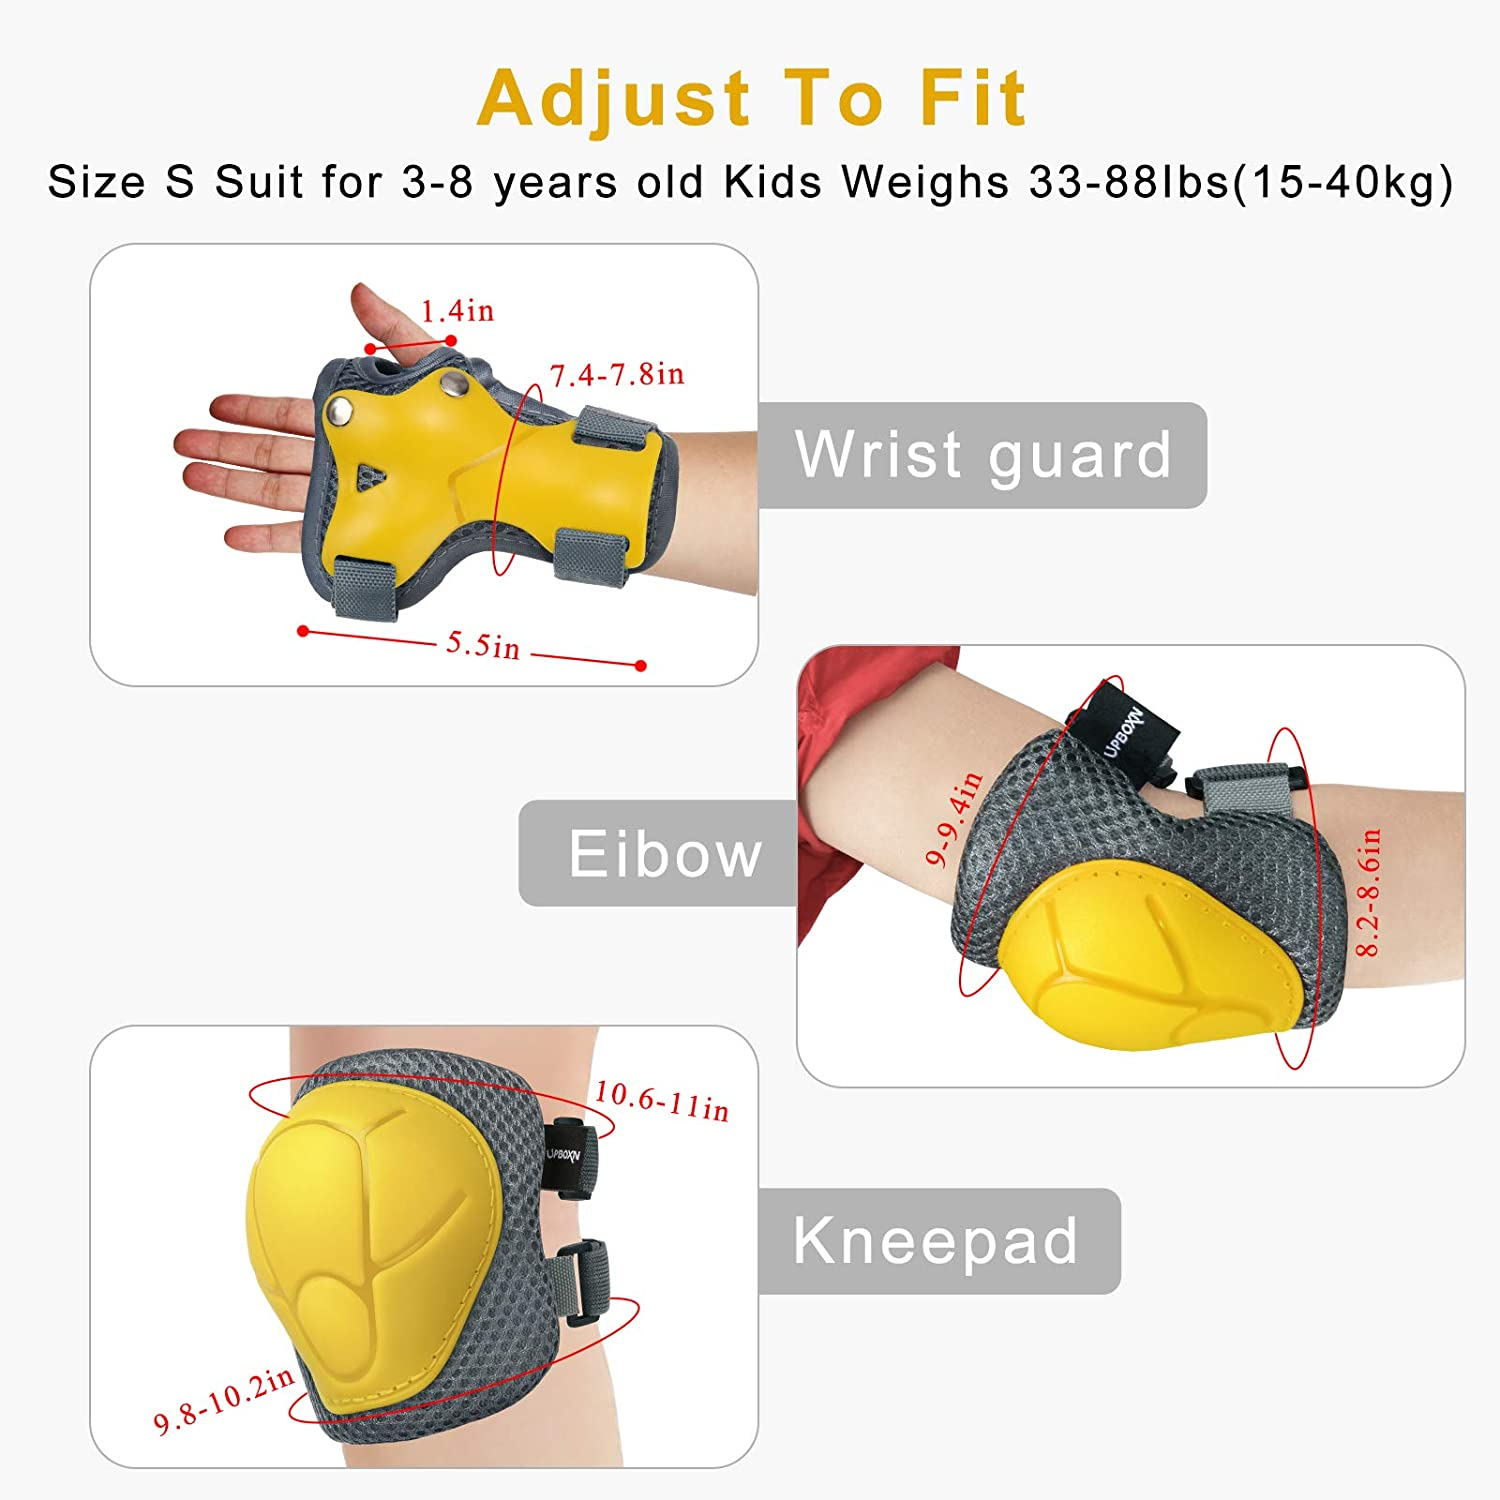 Kids Protective Gear Set Upboxn Knee Pads and Elbow Pads with Wrist Guard Skateboard Accessories for BMX Bike Skateboard Skating Cycling Rollerblading Scooter for Kids 3-8 Years 6Pcs Yellow, Small